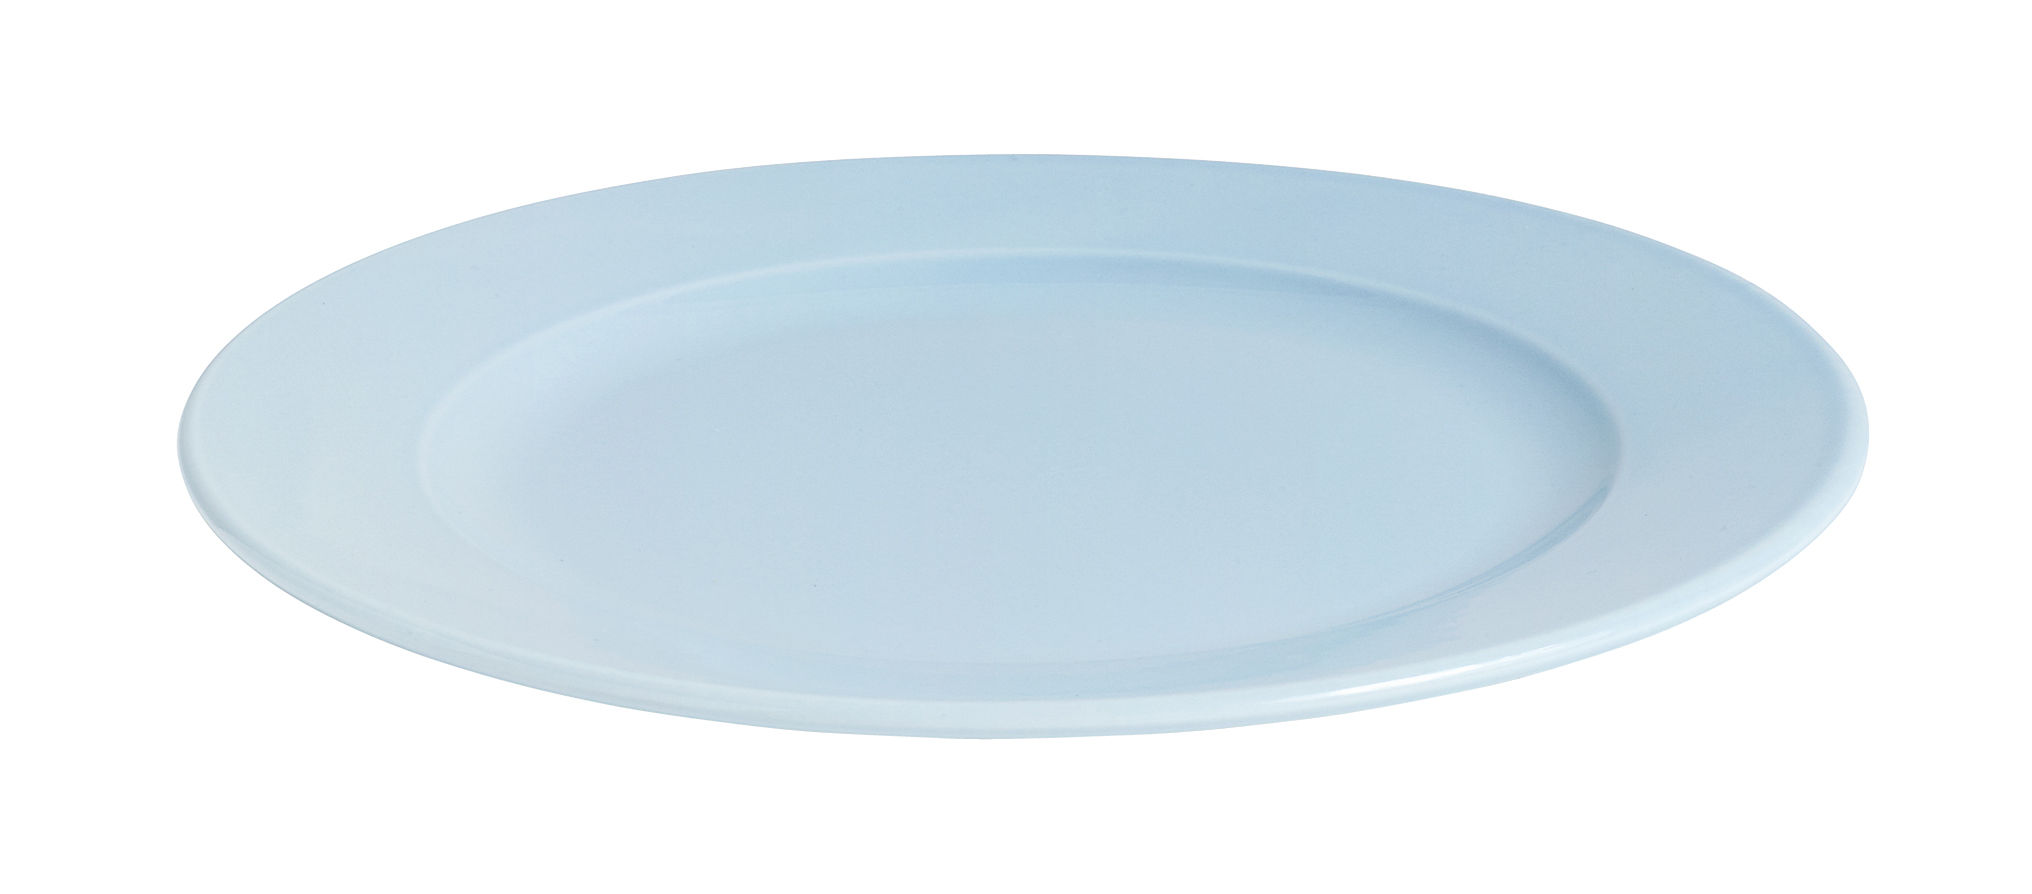 Arts de la table - Assiettes - Assiette Rainbow / Ø 24 cm - Porcelaine - Hay - Bleu clair - Porcelaine